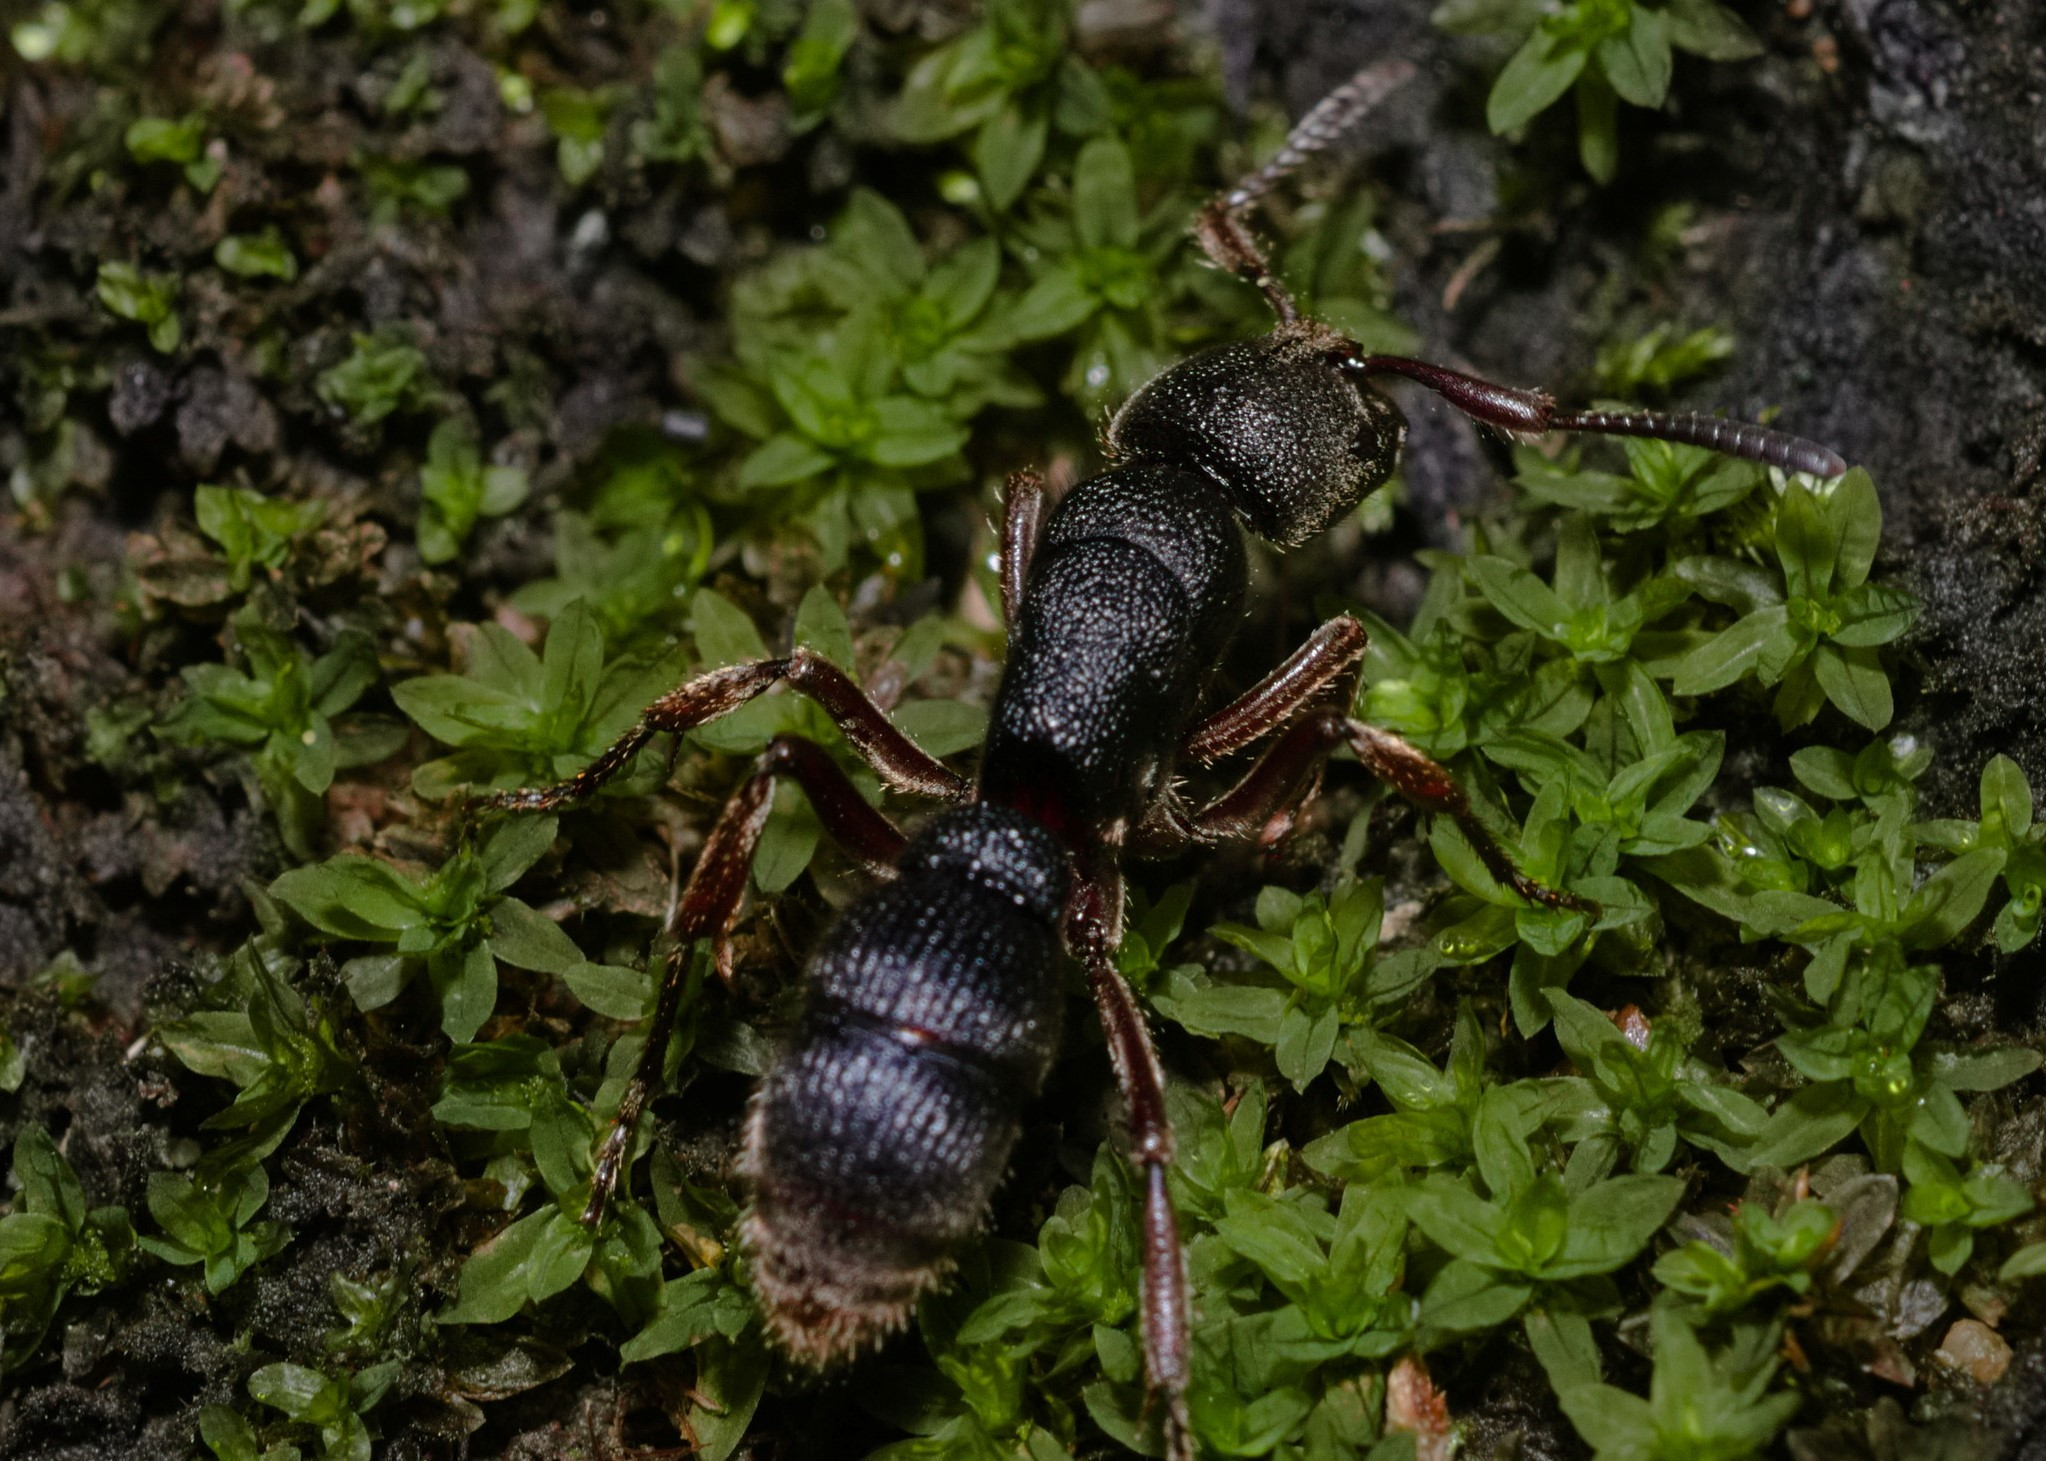 Pseudoneoponera (Pachycondyla) Rufipes